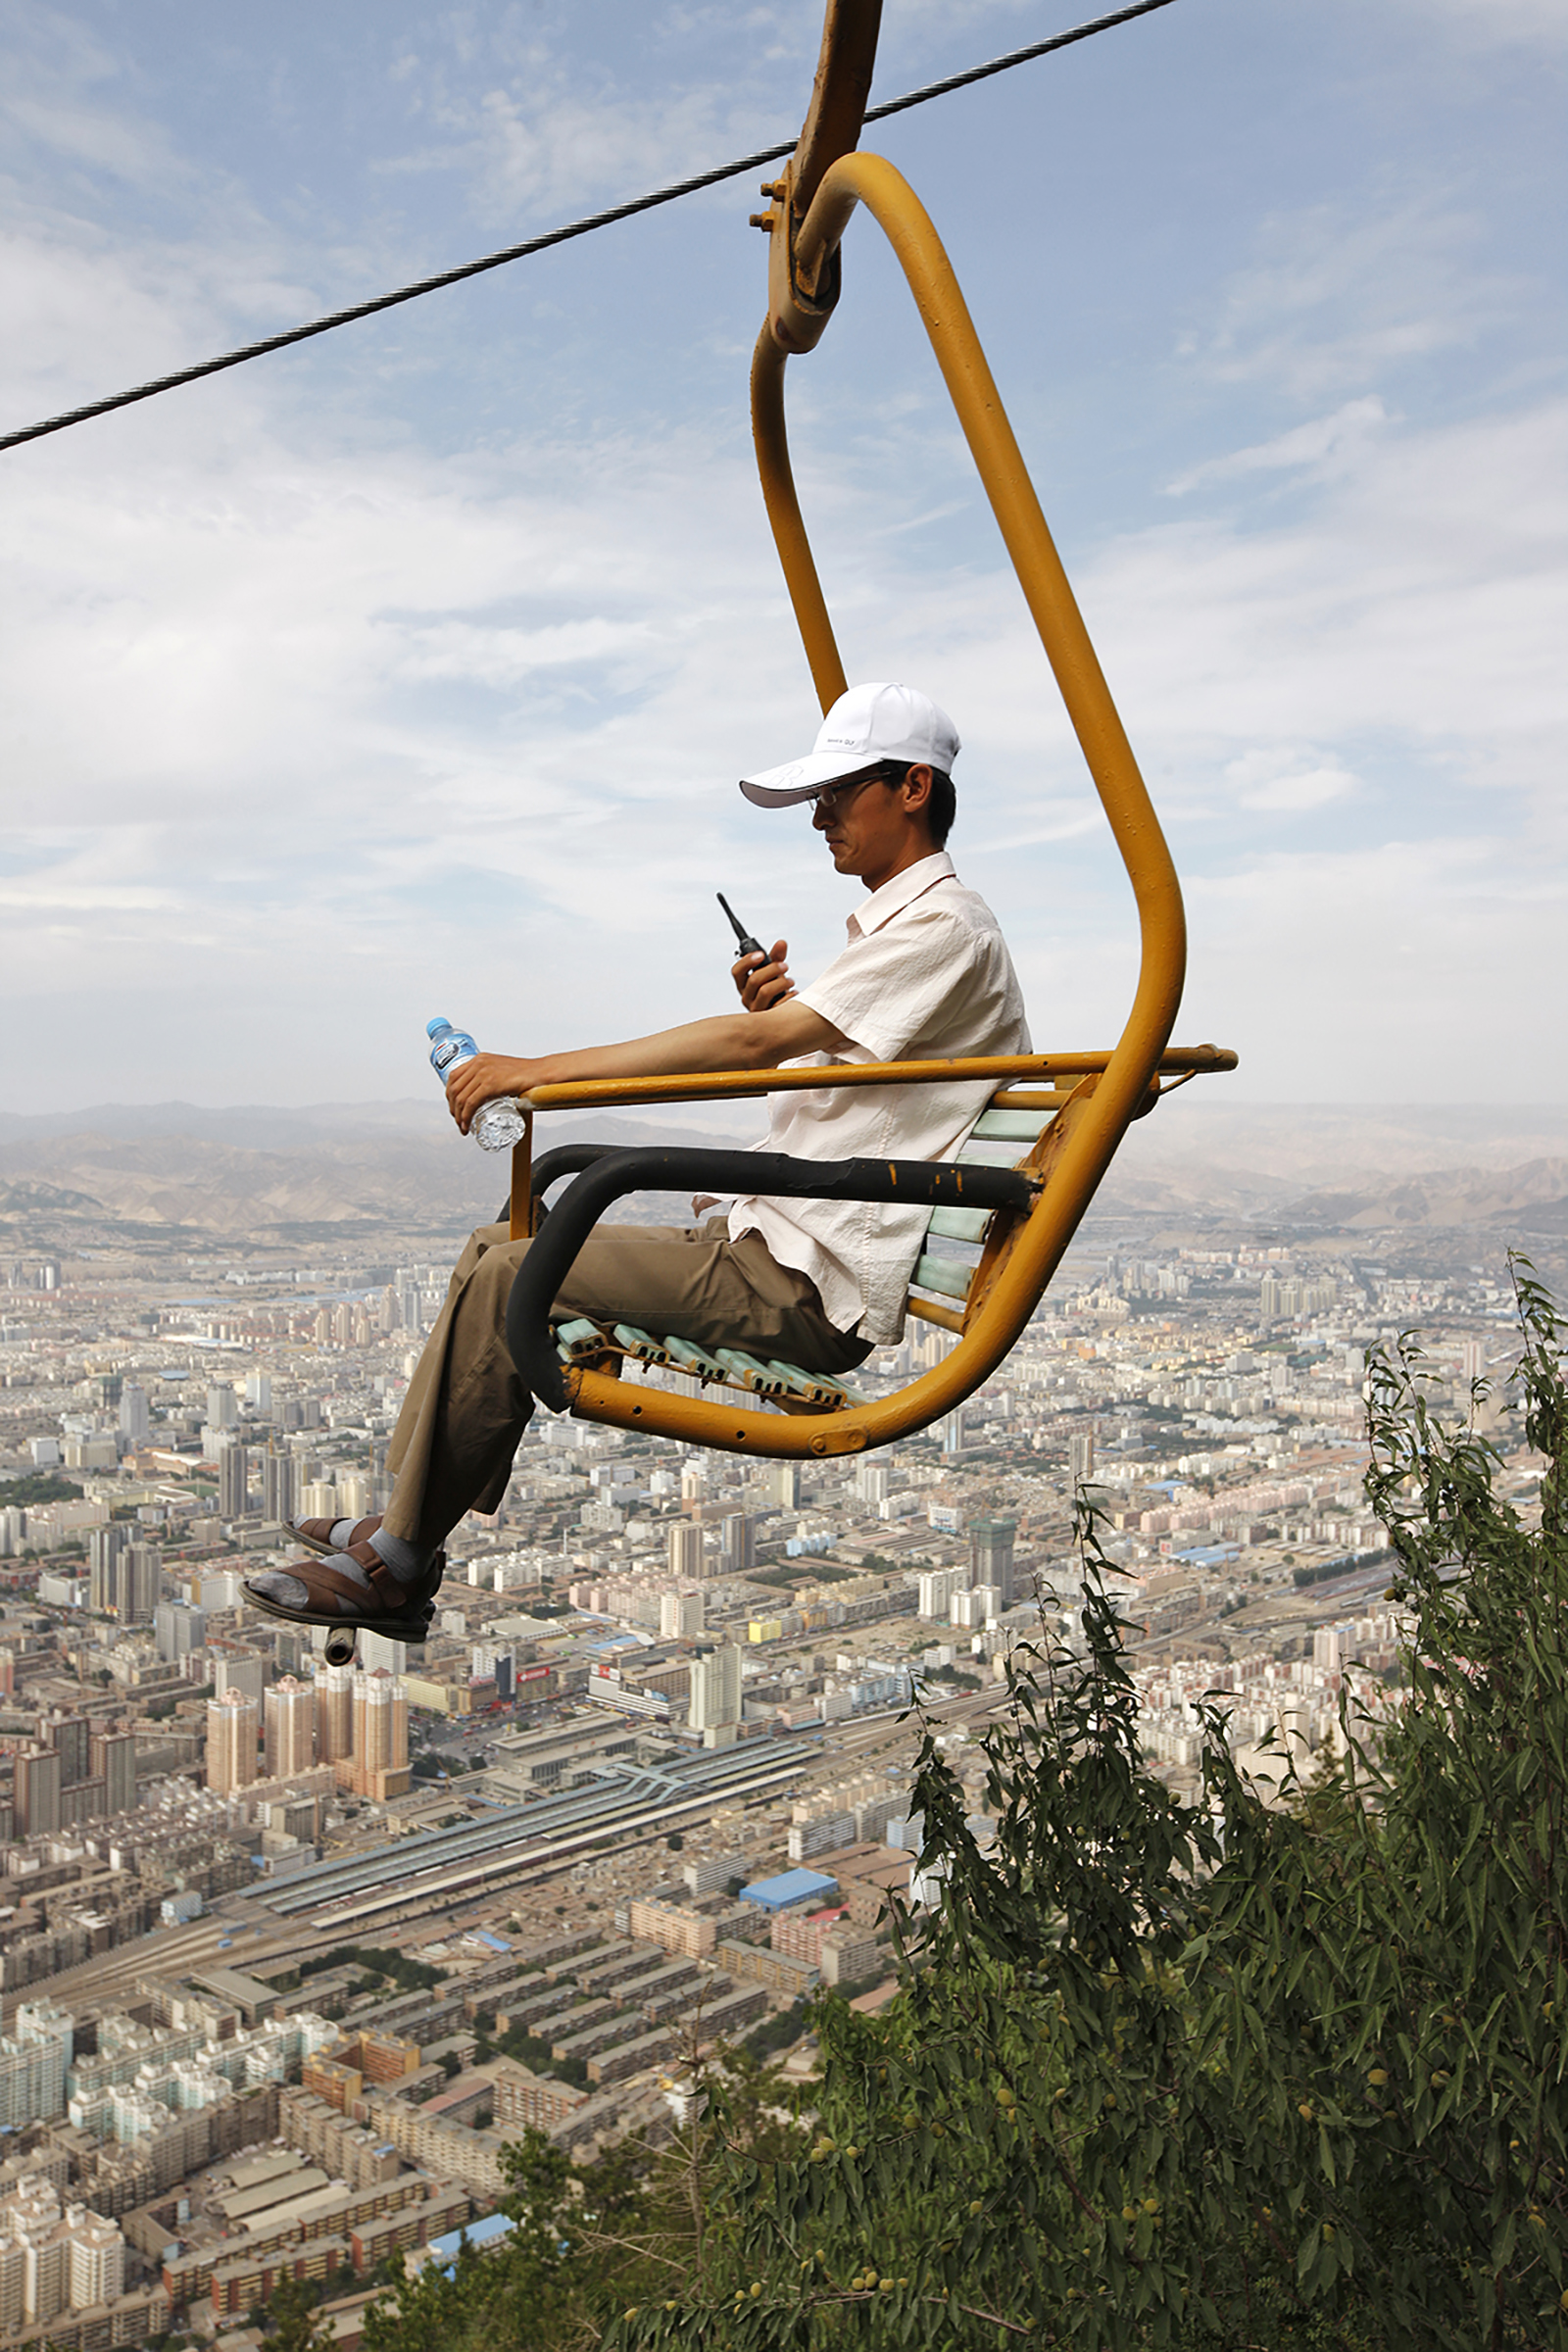 Wang Yishu, A Man in a Cable Car, 2014. Courtesy of the artist